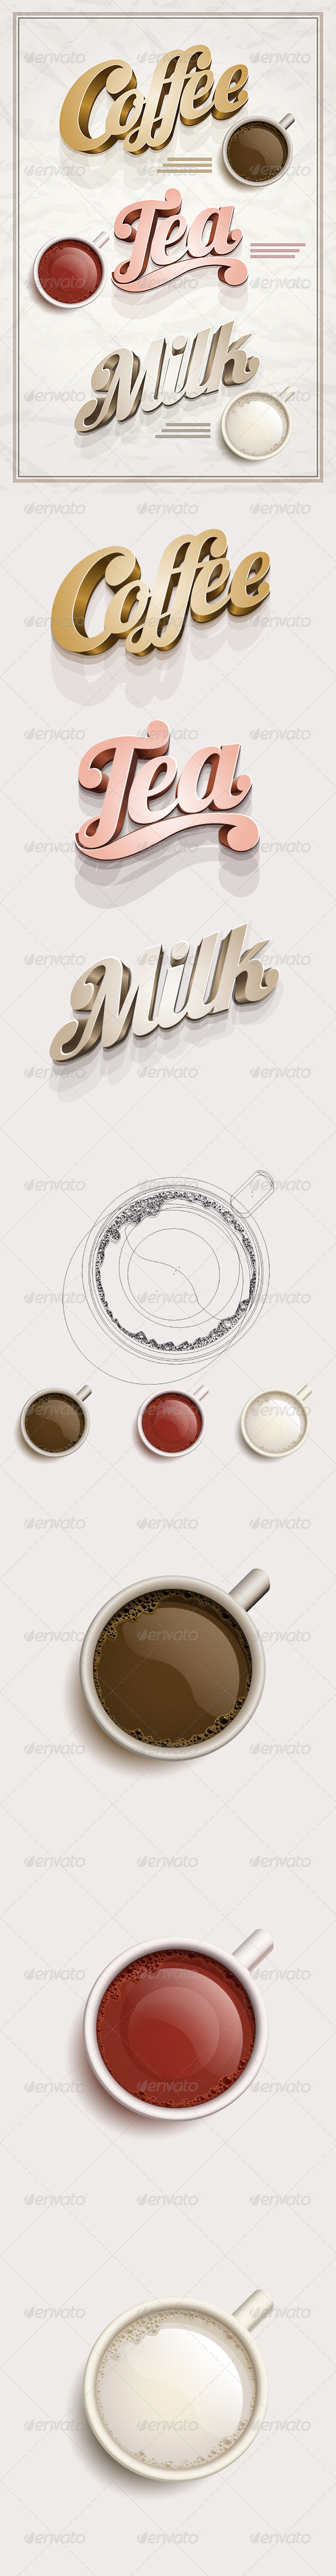 Coffee, Tea and Milk Design Template - Objects Vectors